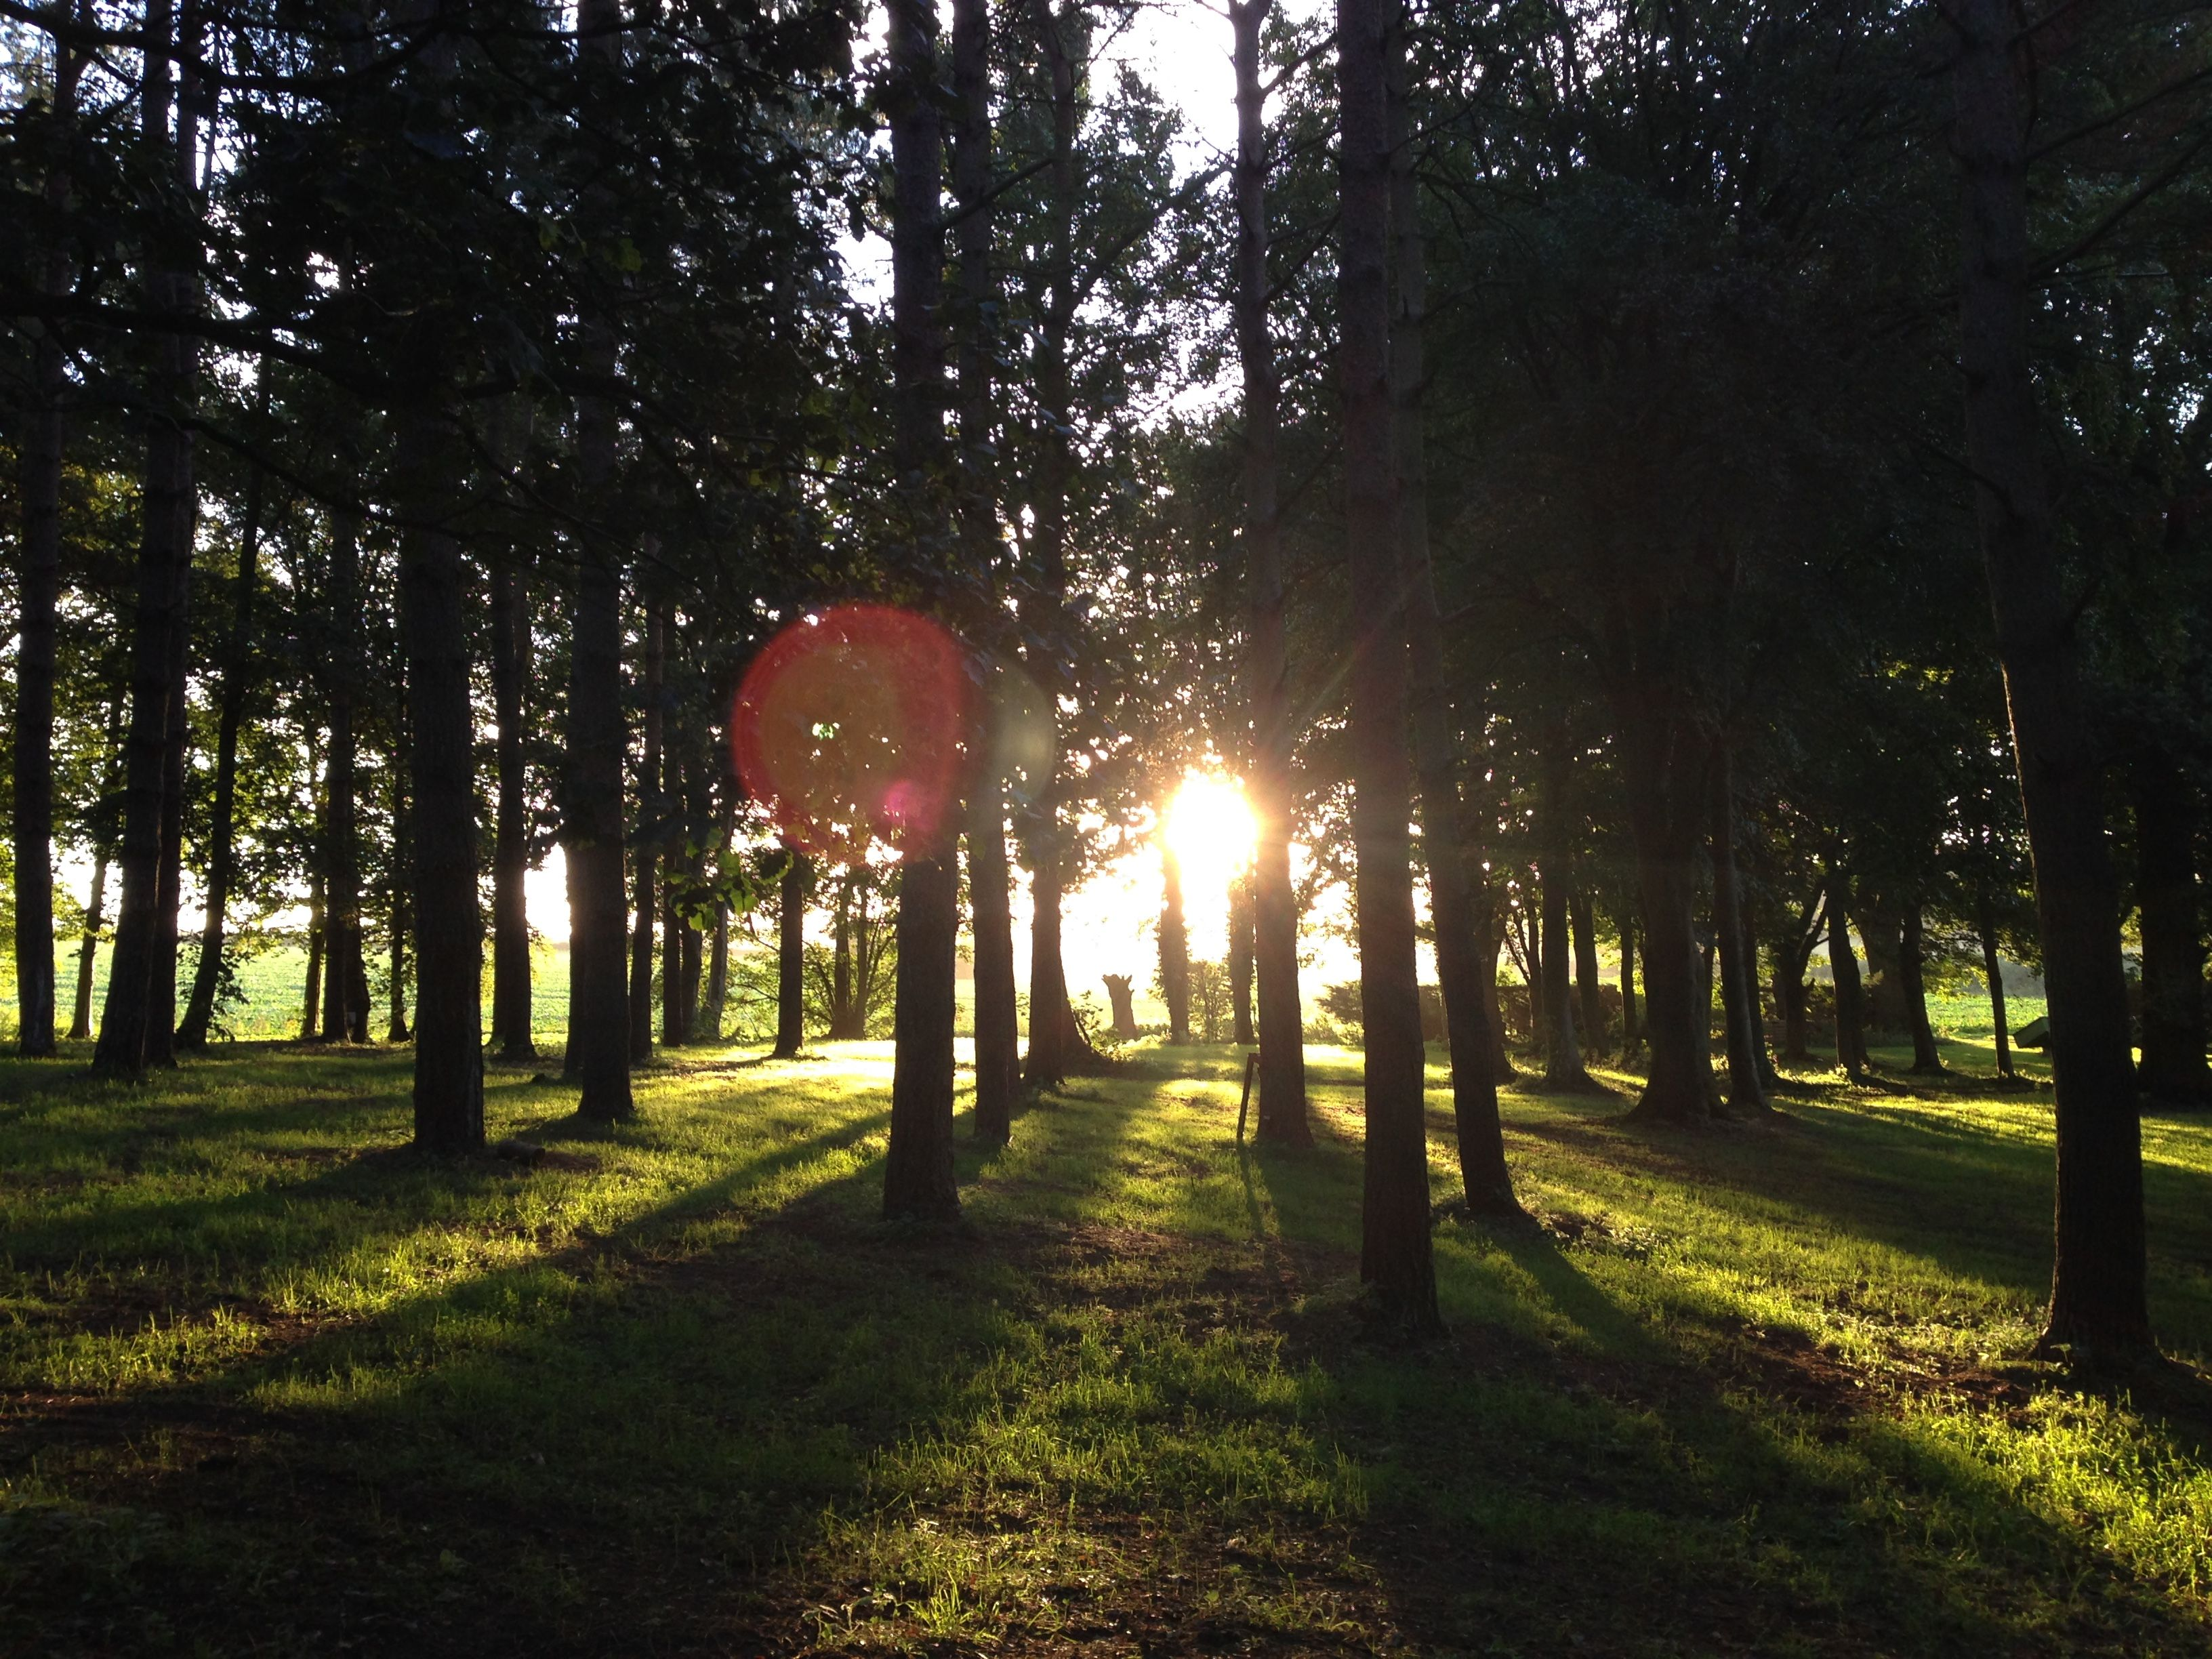 September Sunrise at Happy Valley Norfolk - Woodland Glamping in the Winter  never looked so good. Couples Retreat - Getaway - Escape - Discover - Relax  - Be ...